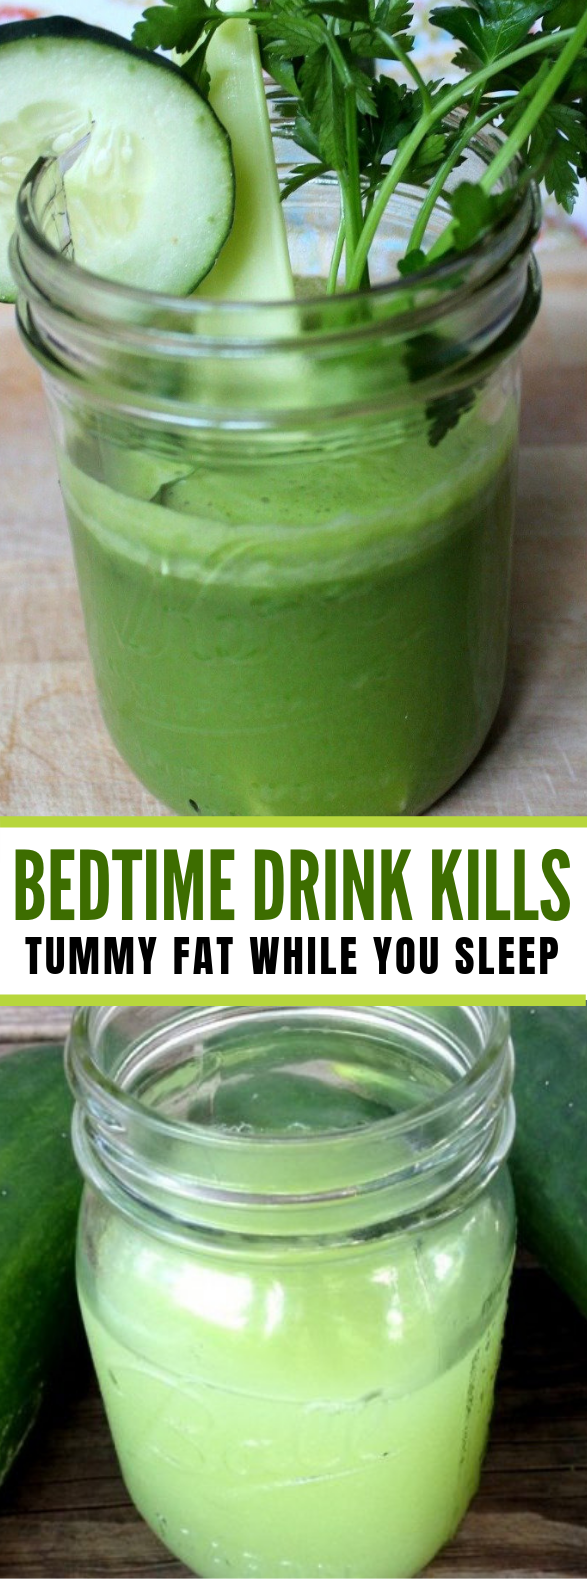 This 1 Simple Bedtime Drink Kills [Tummy Fat] While You Sleep #drinks #healthy